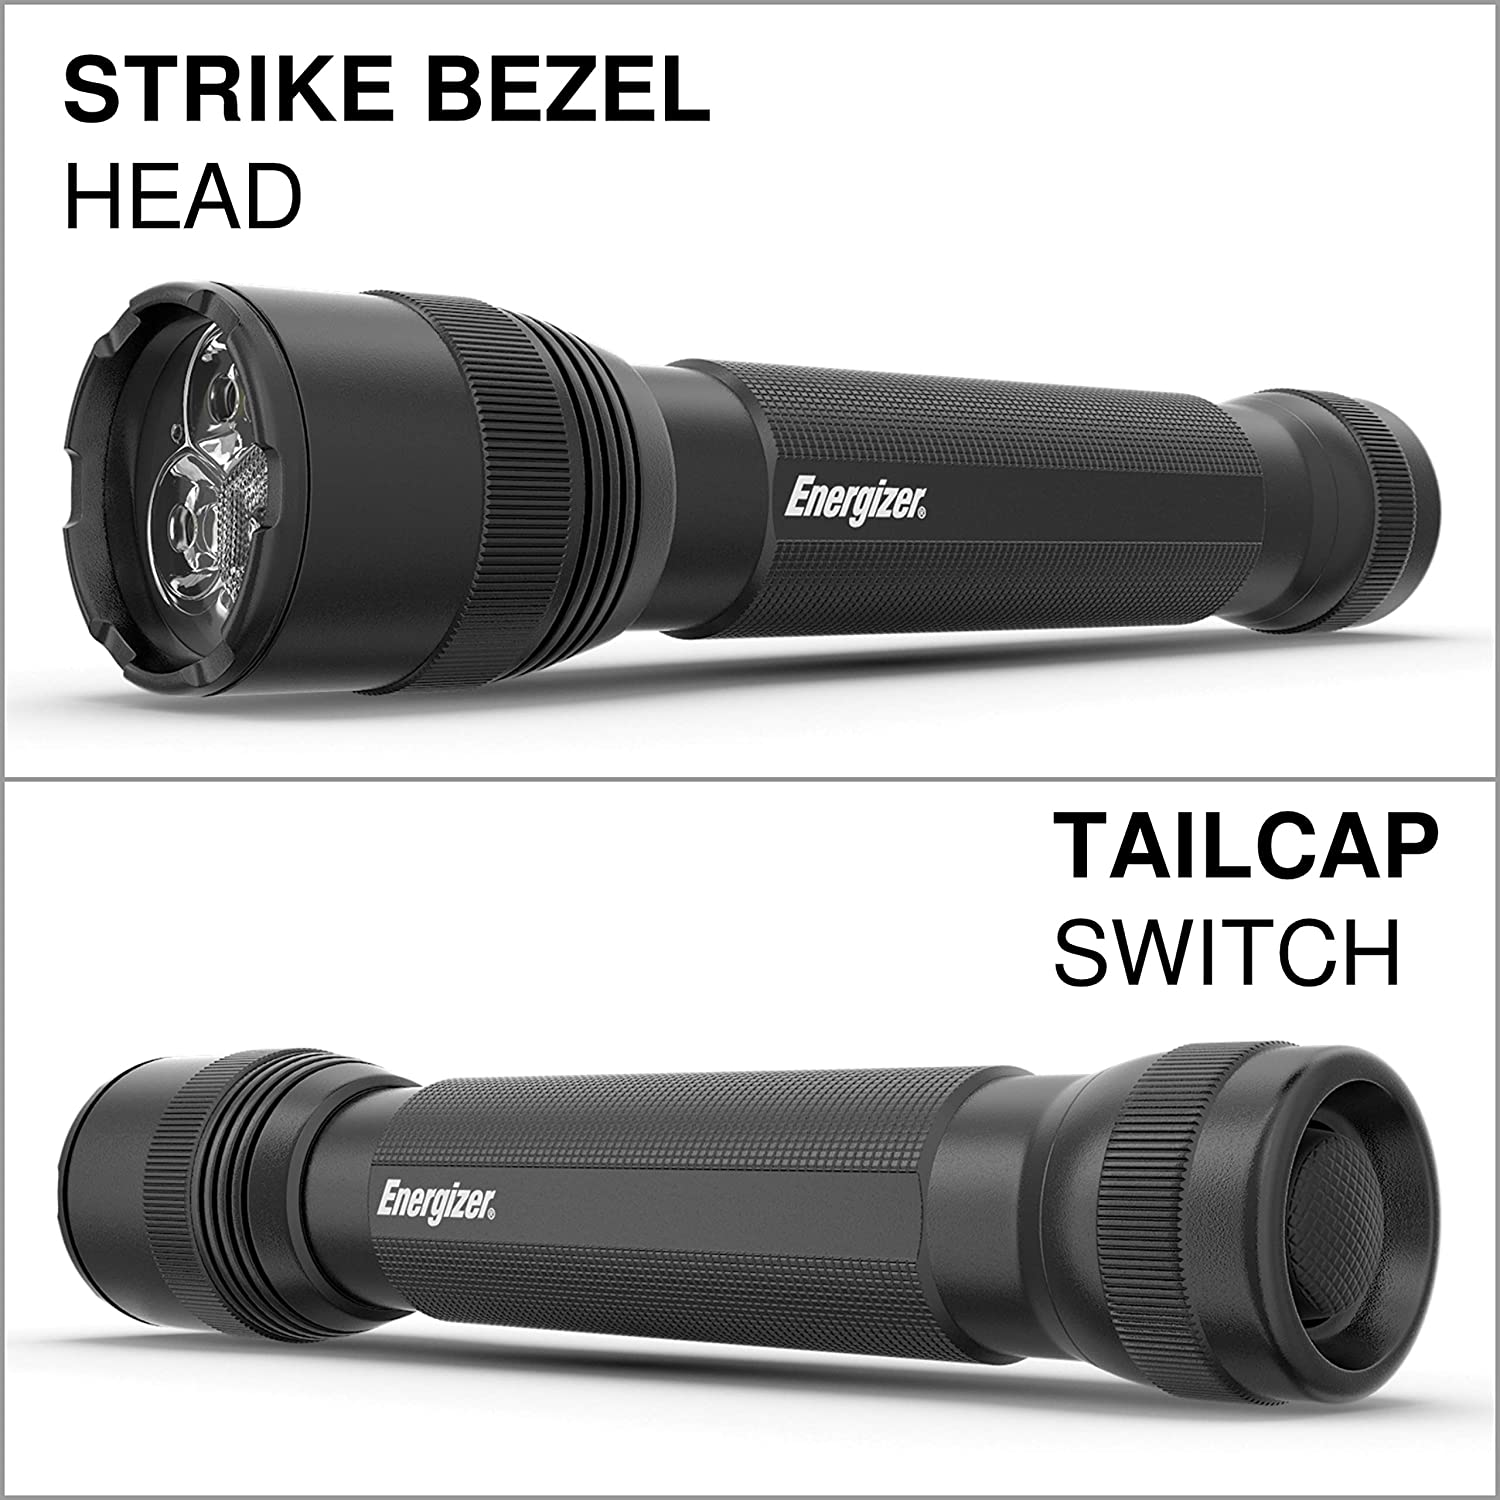 Energizer LED Tactical Flashlight, Super Bright High Lumens, Use for Hurricane Supplies, Survival Kit, Camping Accessories, Ultra-Durable and Water Resistant LED Flashlights, Black, 12.48: Sports & Outdoors